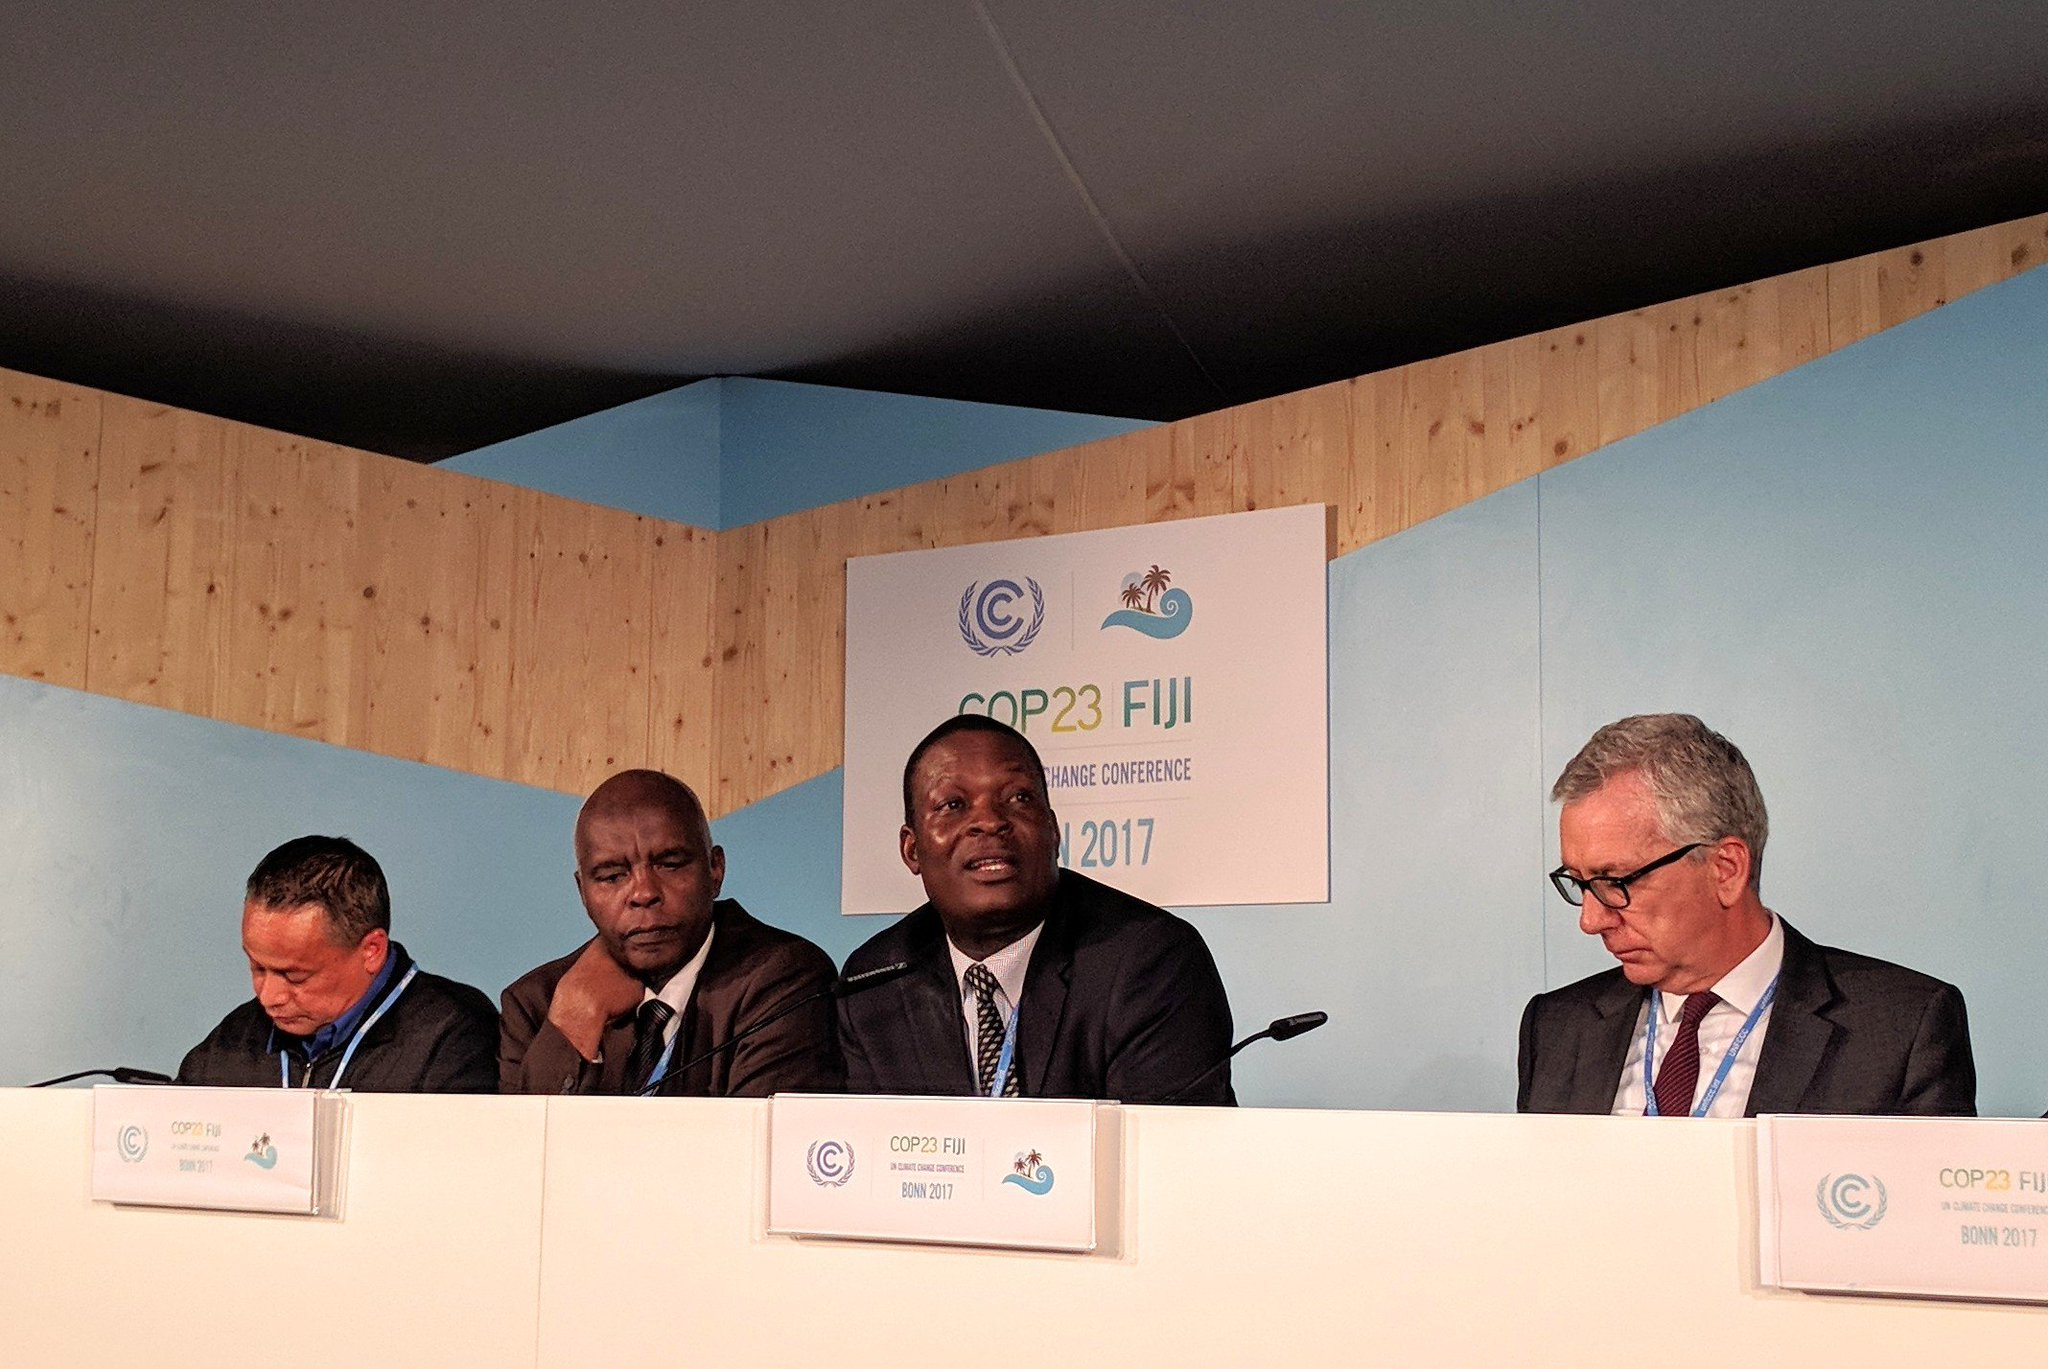 Odhengo: in Kenya, climate action comes at the county & sub-county level. But we need a fund to deliver these actions at scale. #cop23 https://t.co/BwO5SUliQb